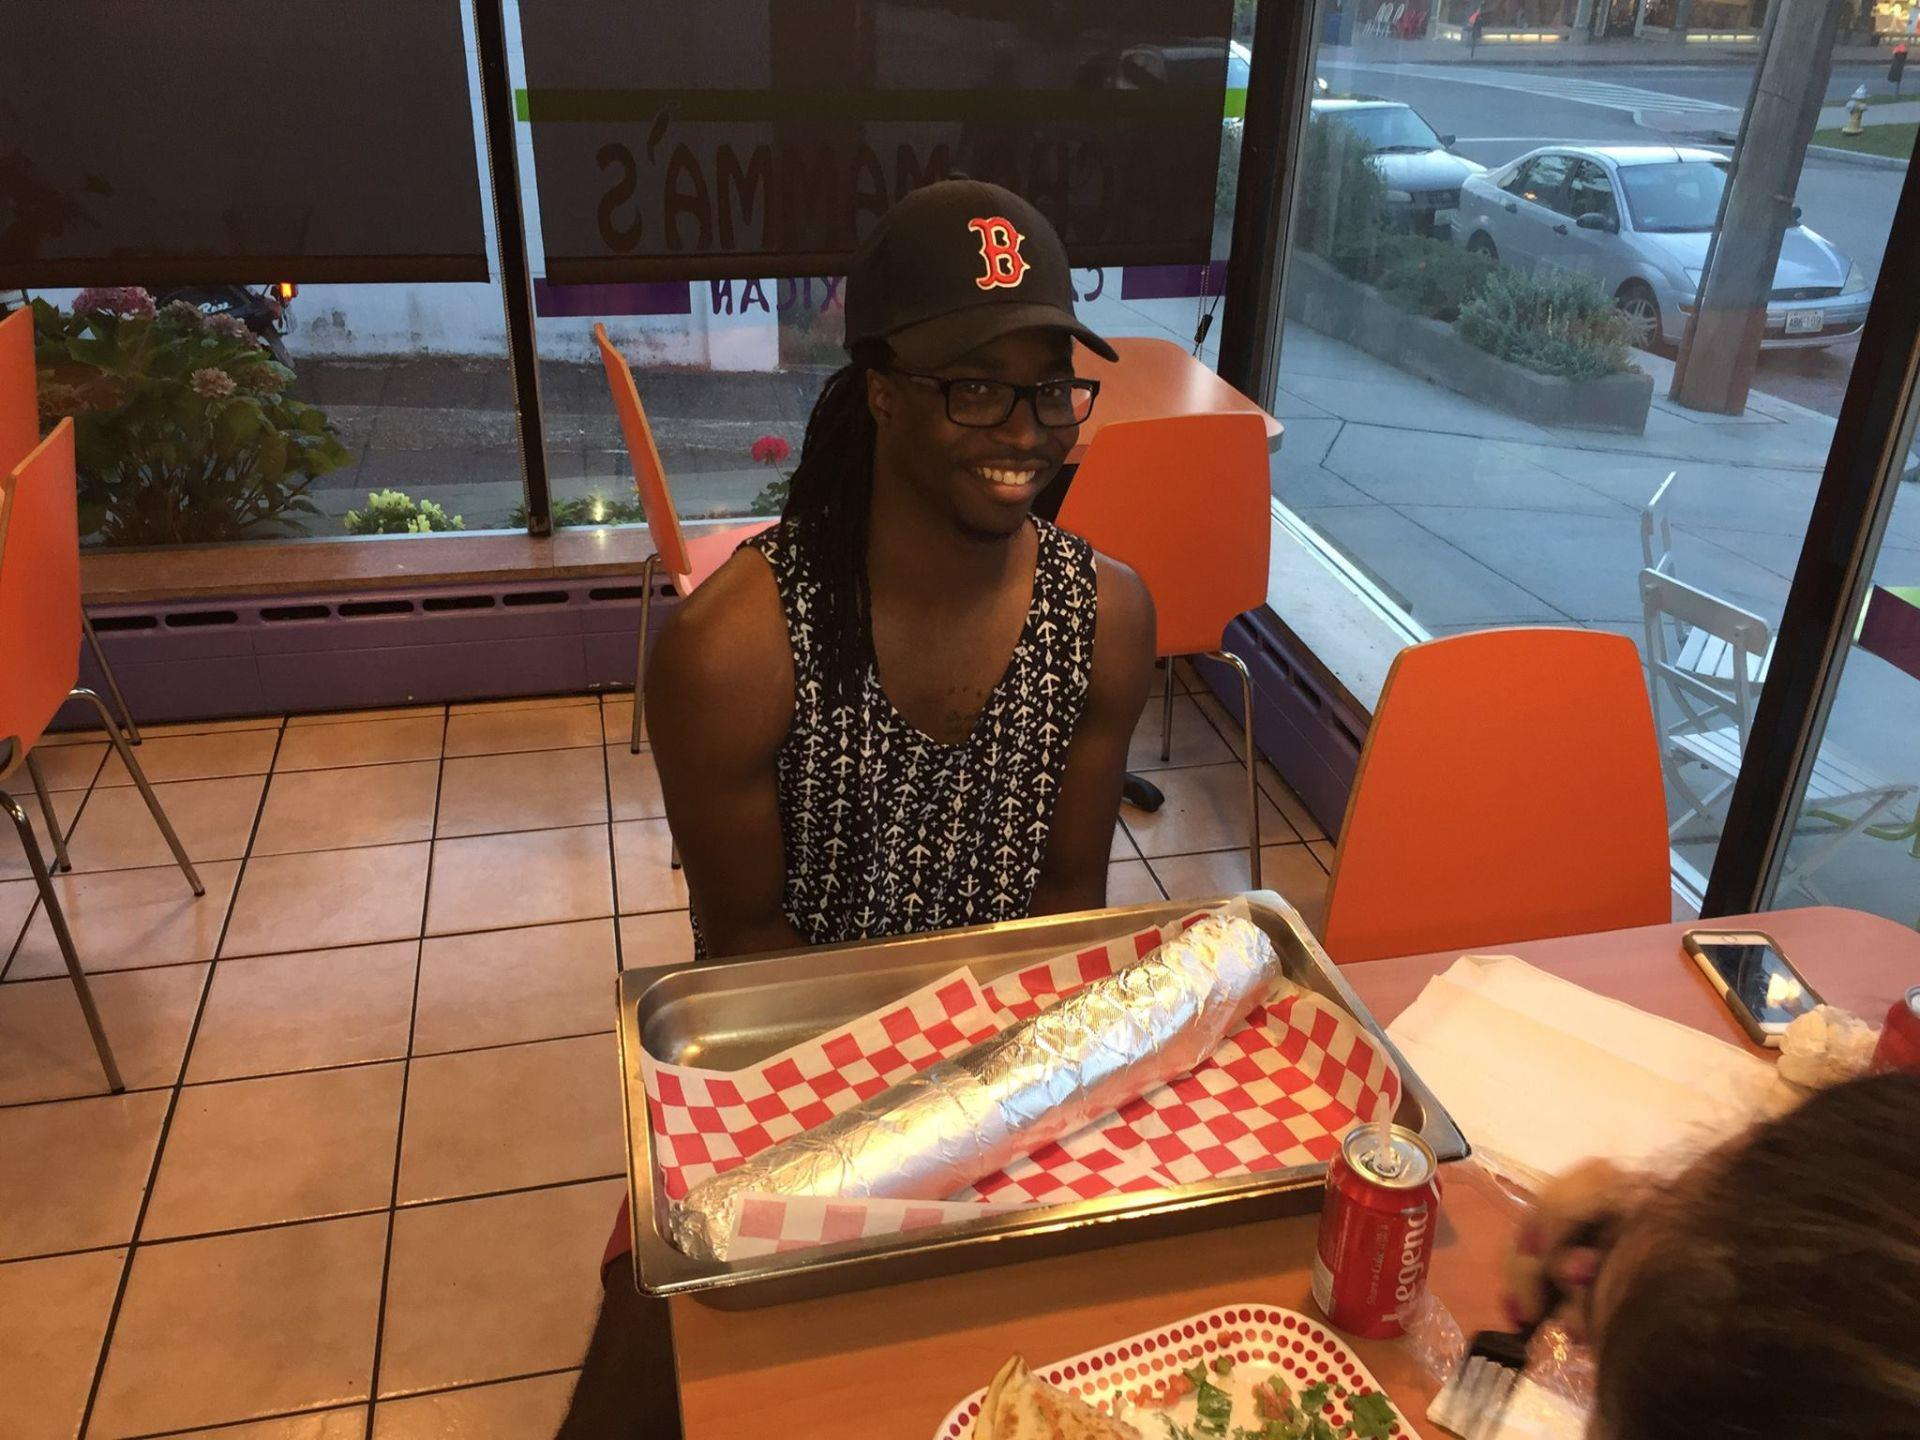 Customer sitting at a table ready for the burrito challenge